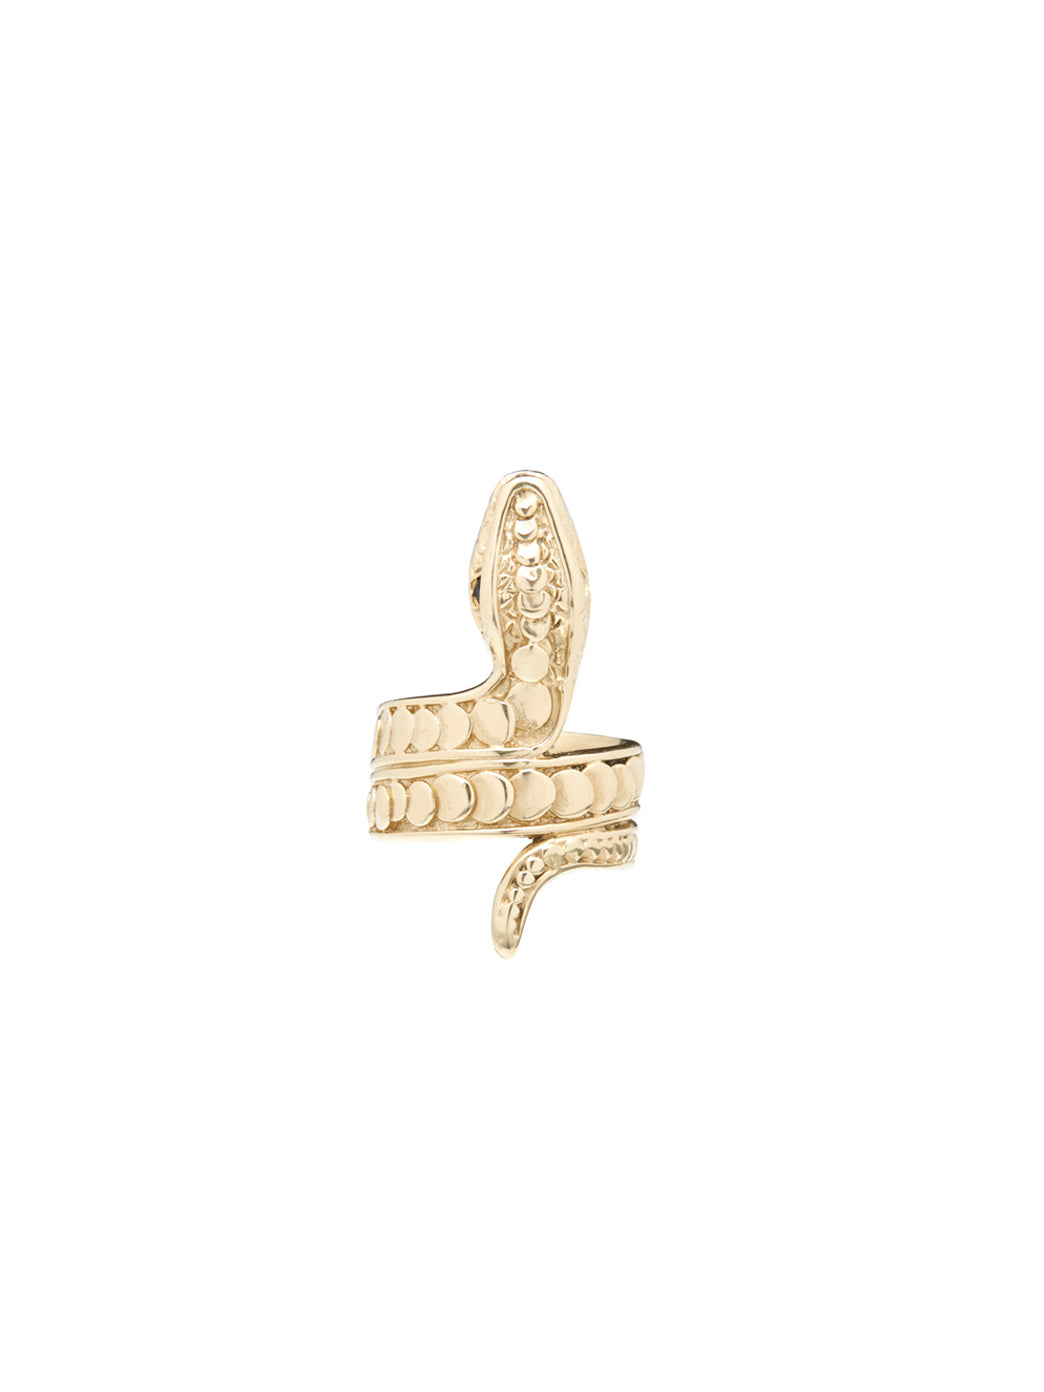 Fiorina Jewellery Gold Snake Ring